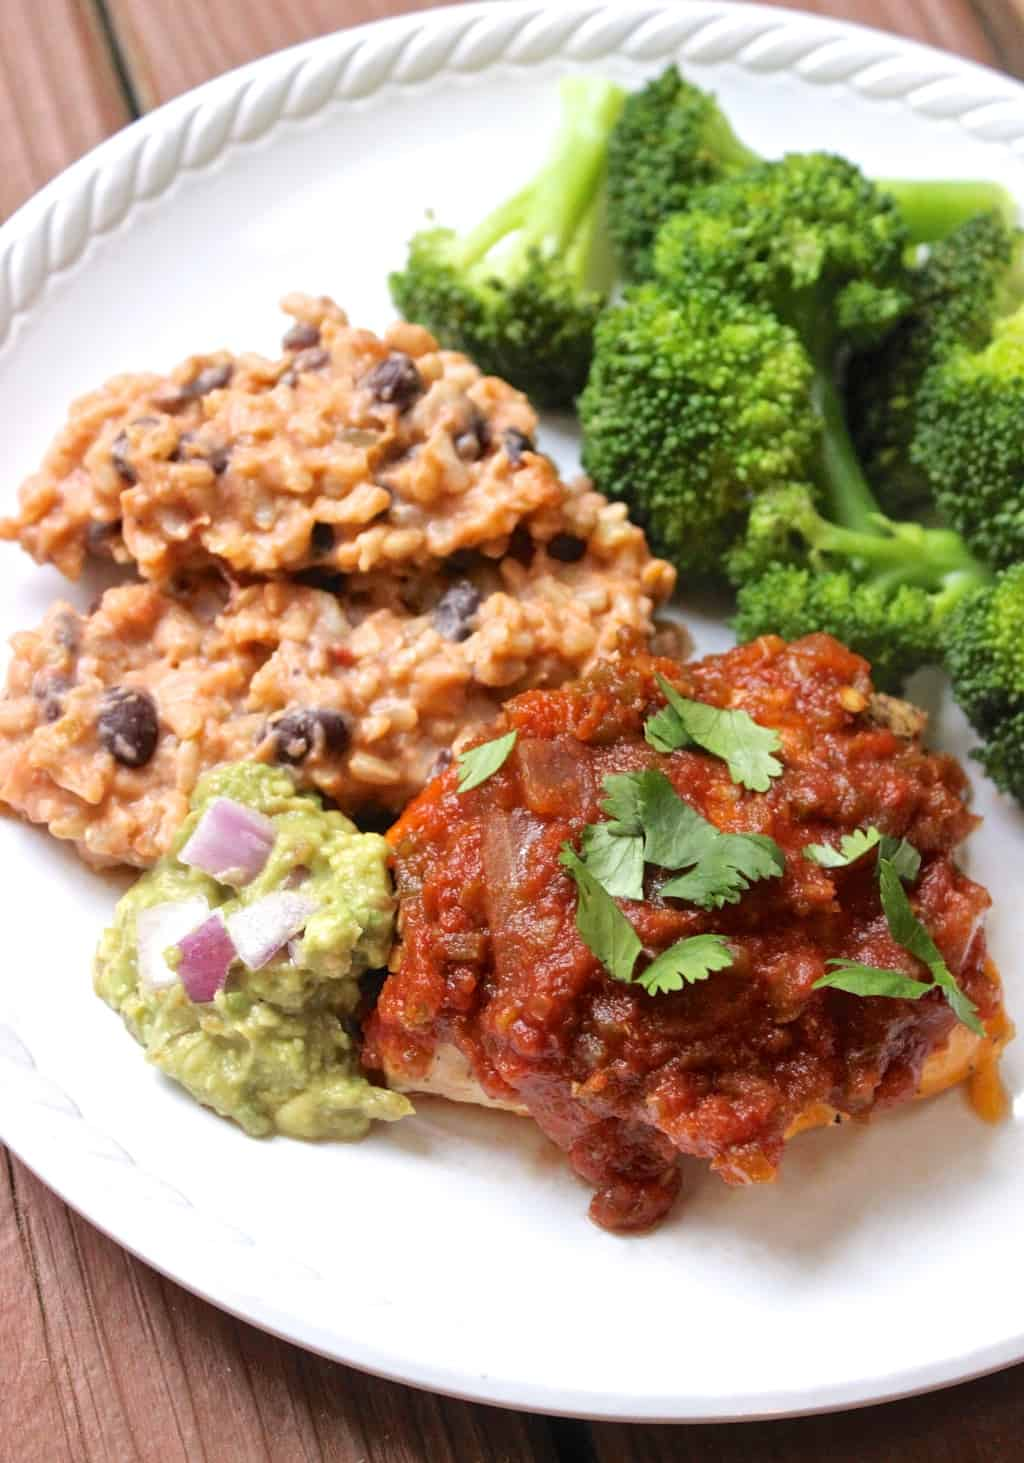 10 simple, healthy Mexican recipes that are DELICIOUS like this Cheese-Stuffed Salsa Chicken